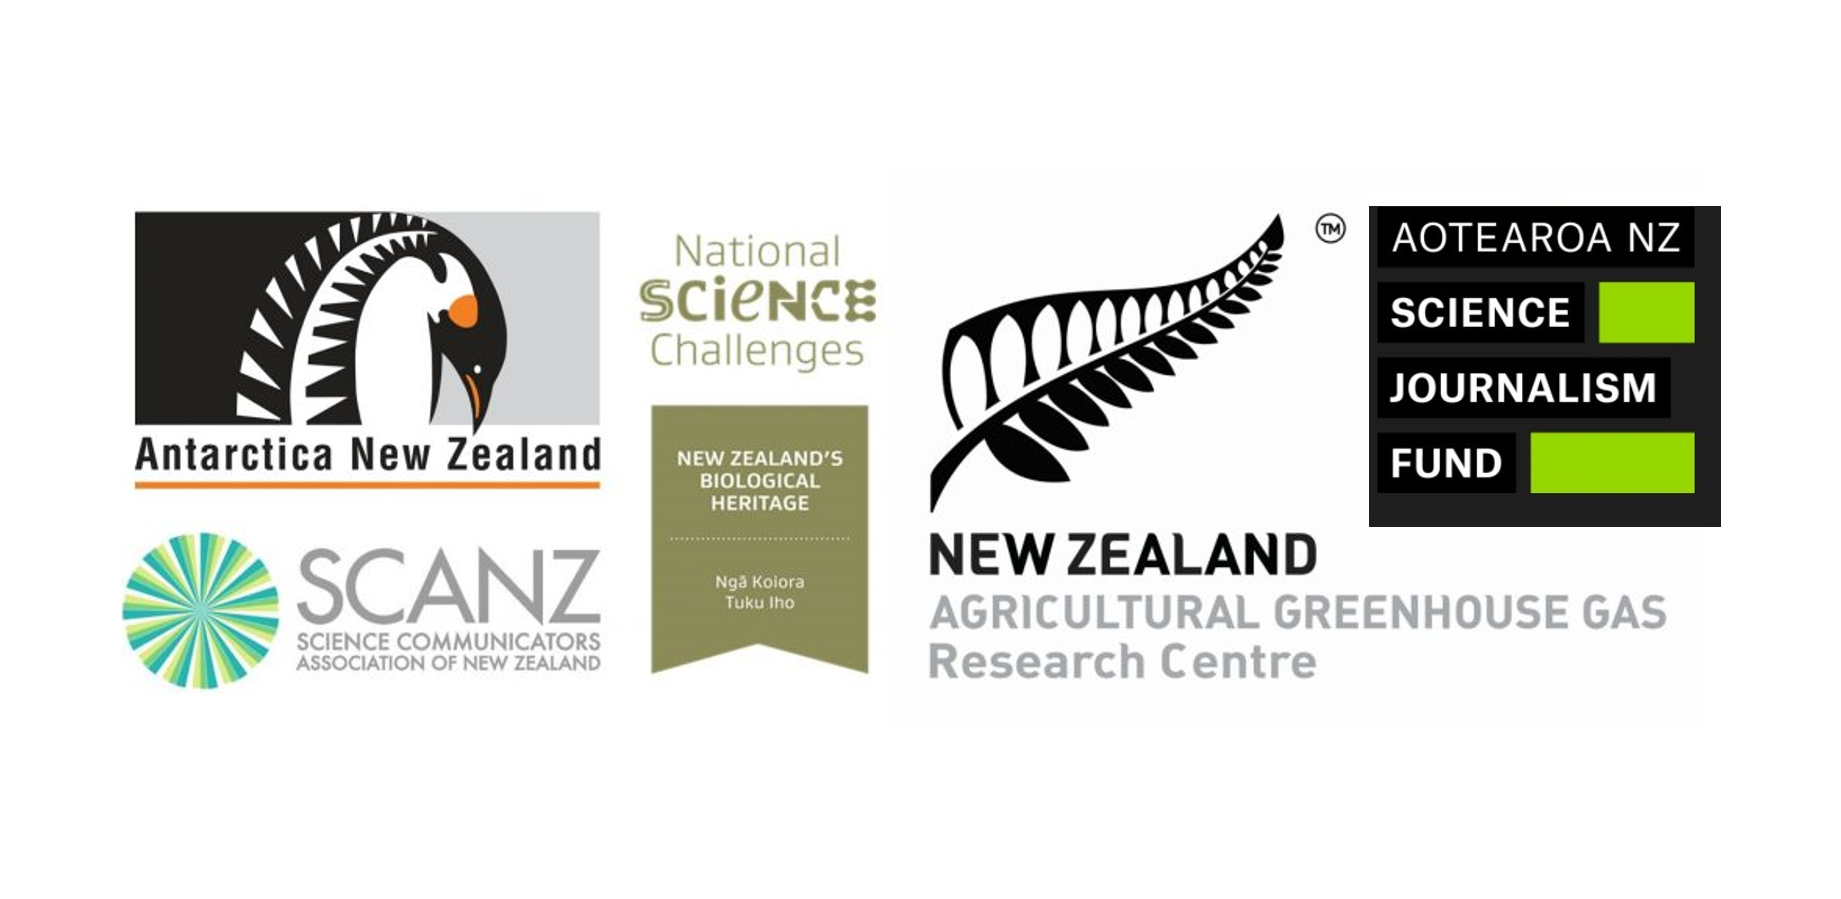 Science journalism fund awards five new projects